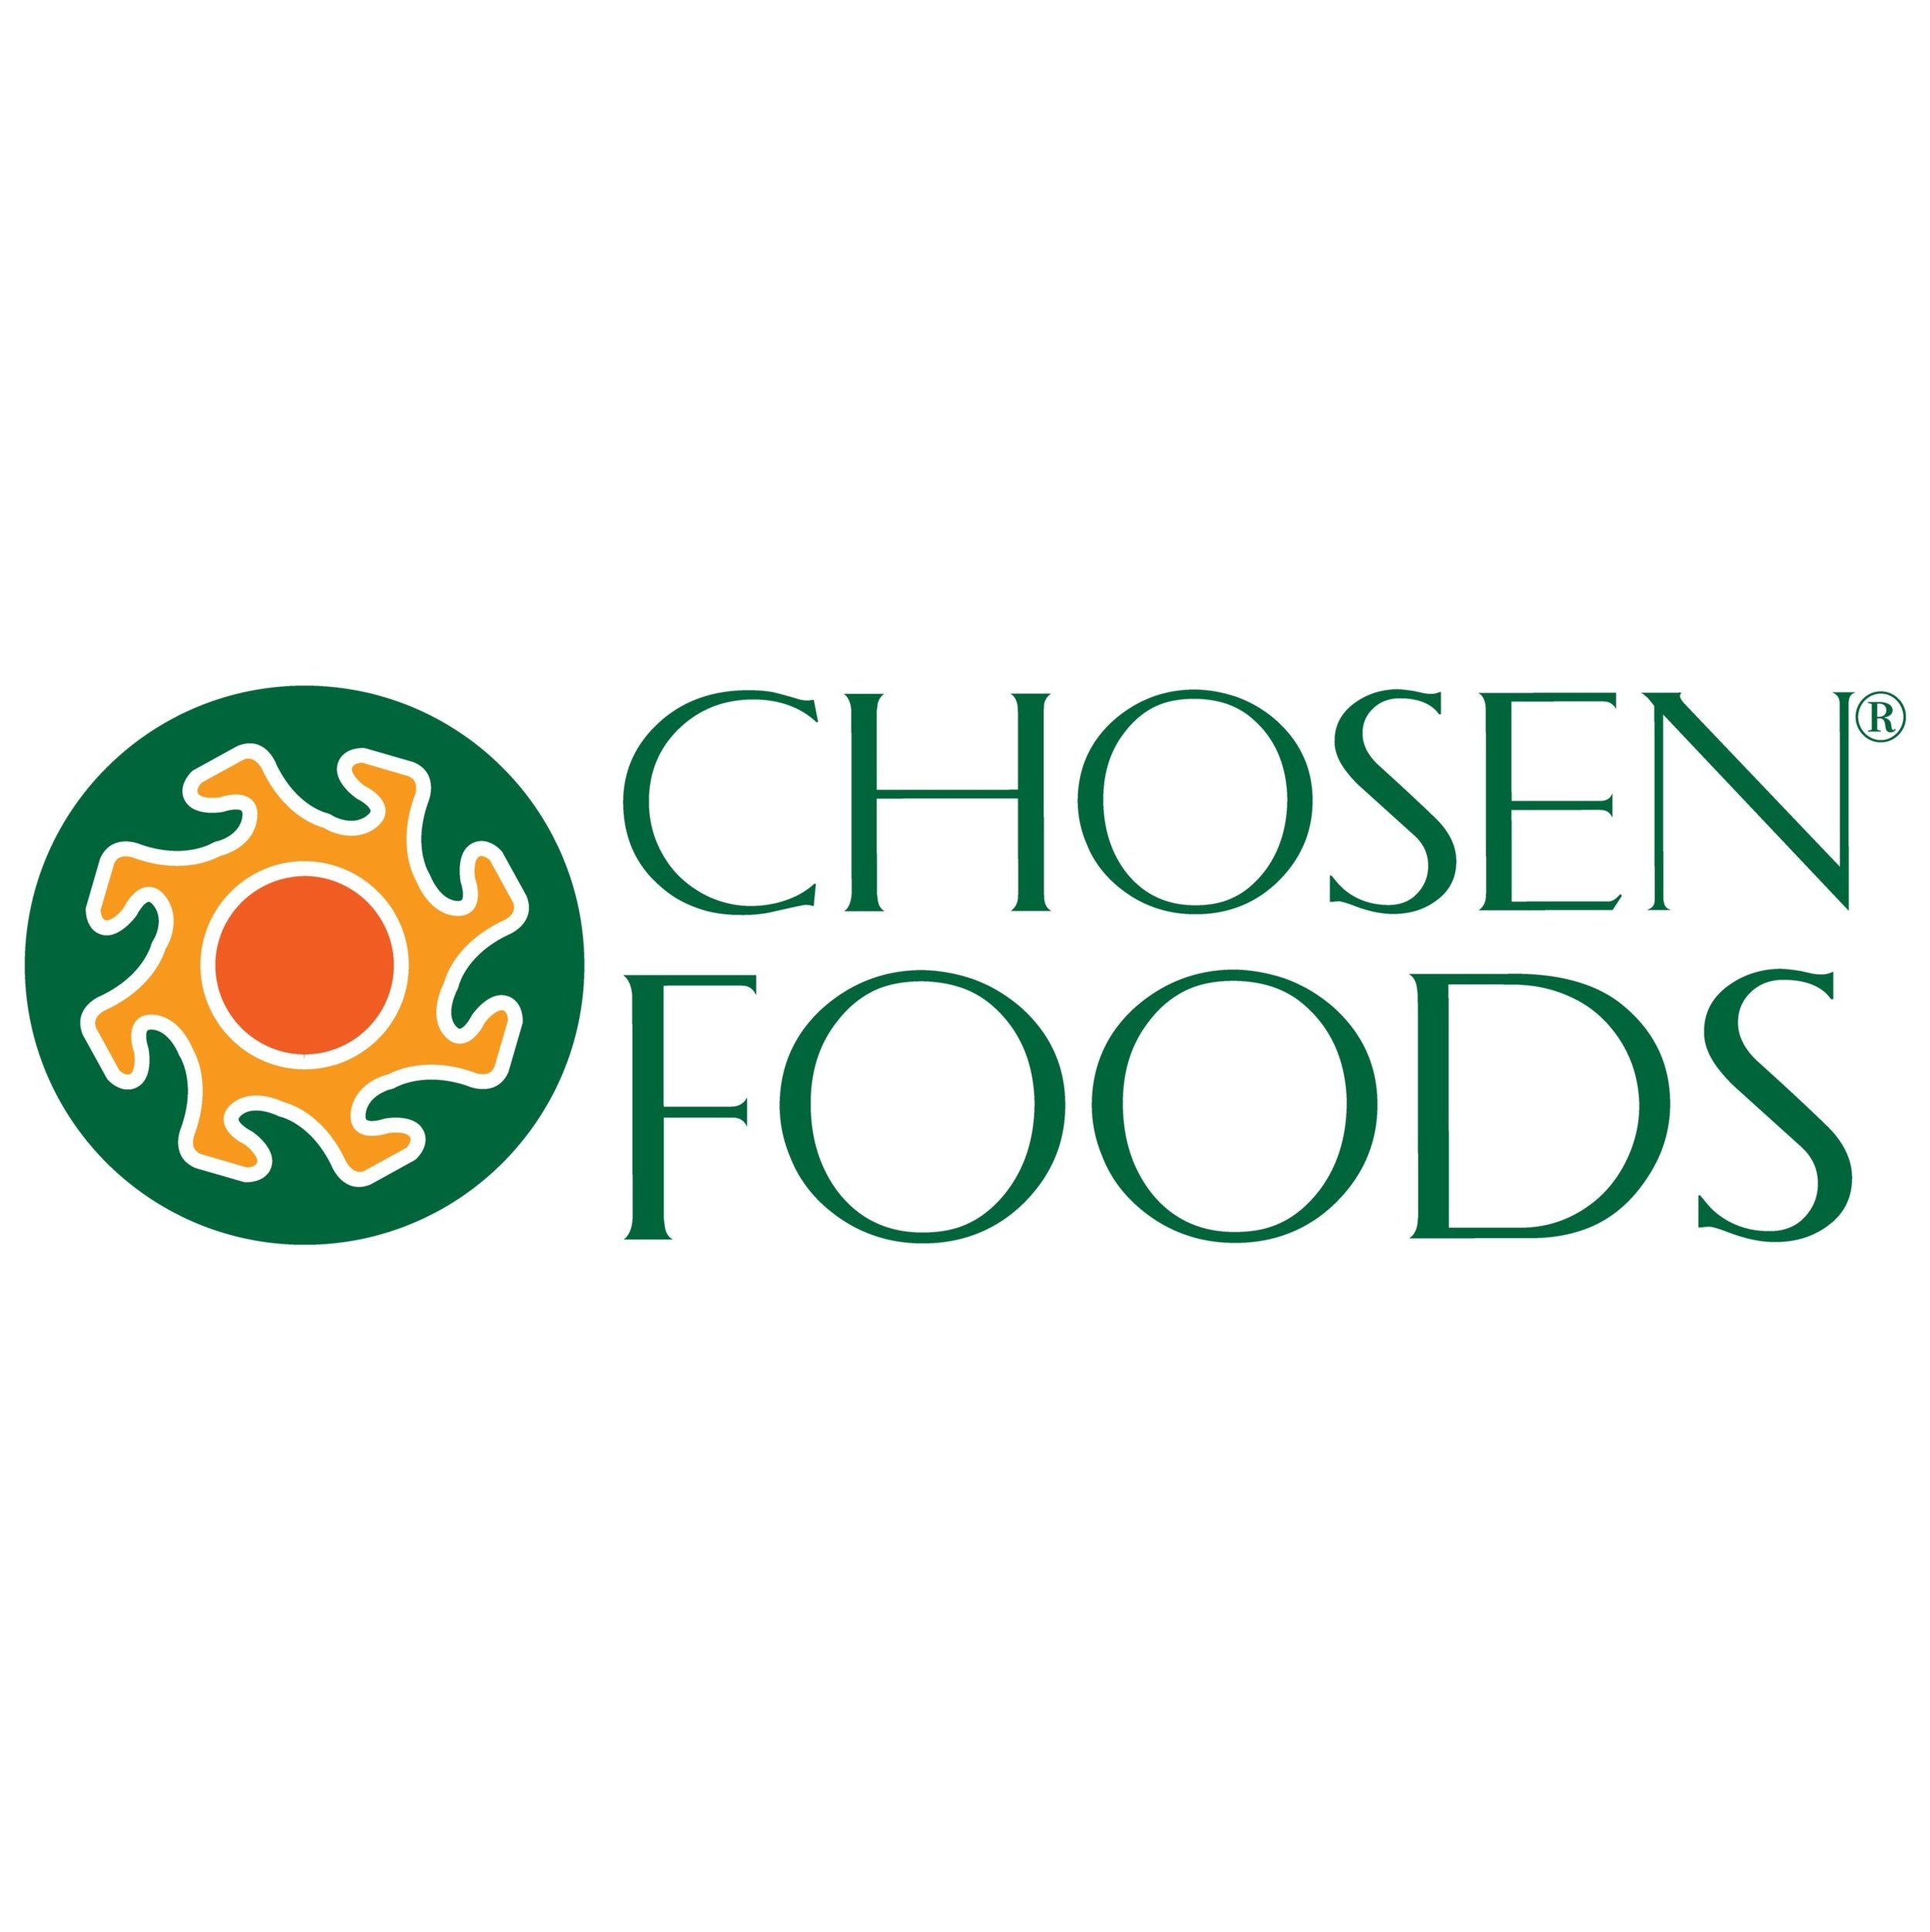 Chosen_foods.jpeg